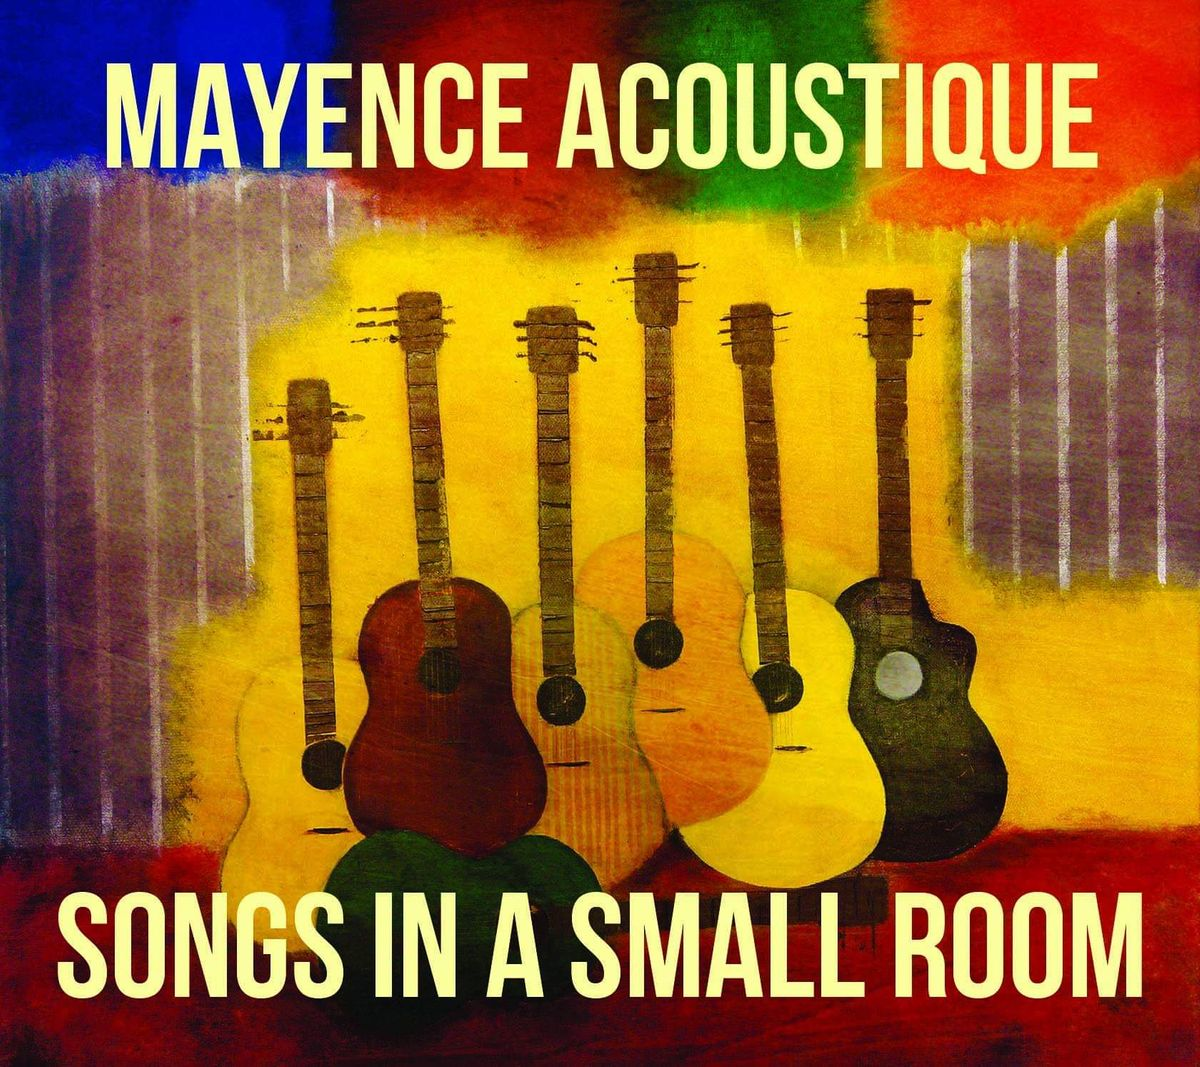 Songs in a small room - Akustik Konzerte in Mainz - mayence acoustique e.V.